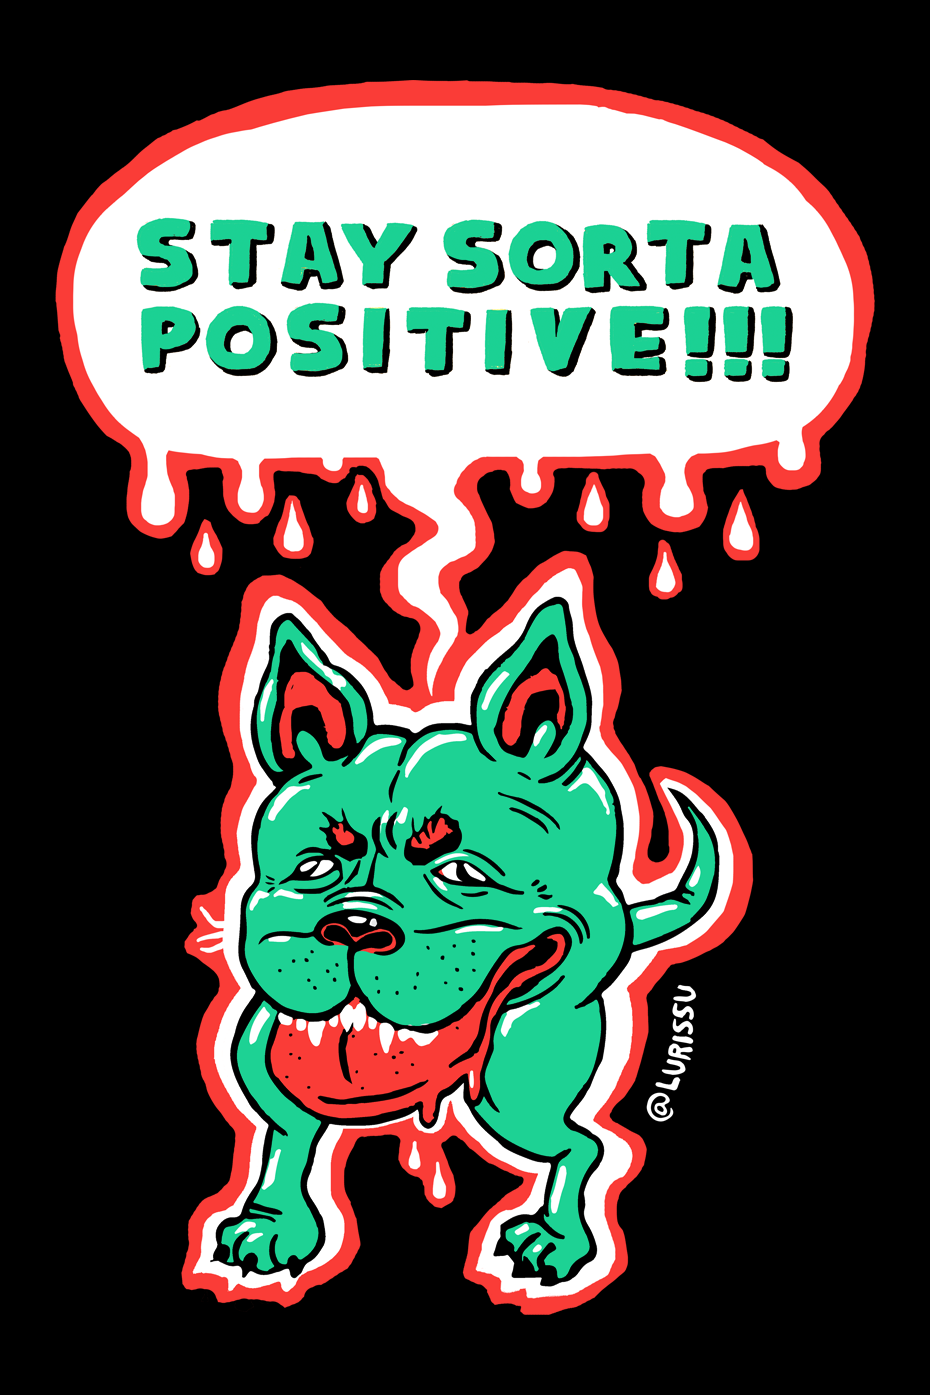 Stay Sorta Positive! by LURISSU